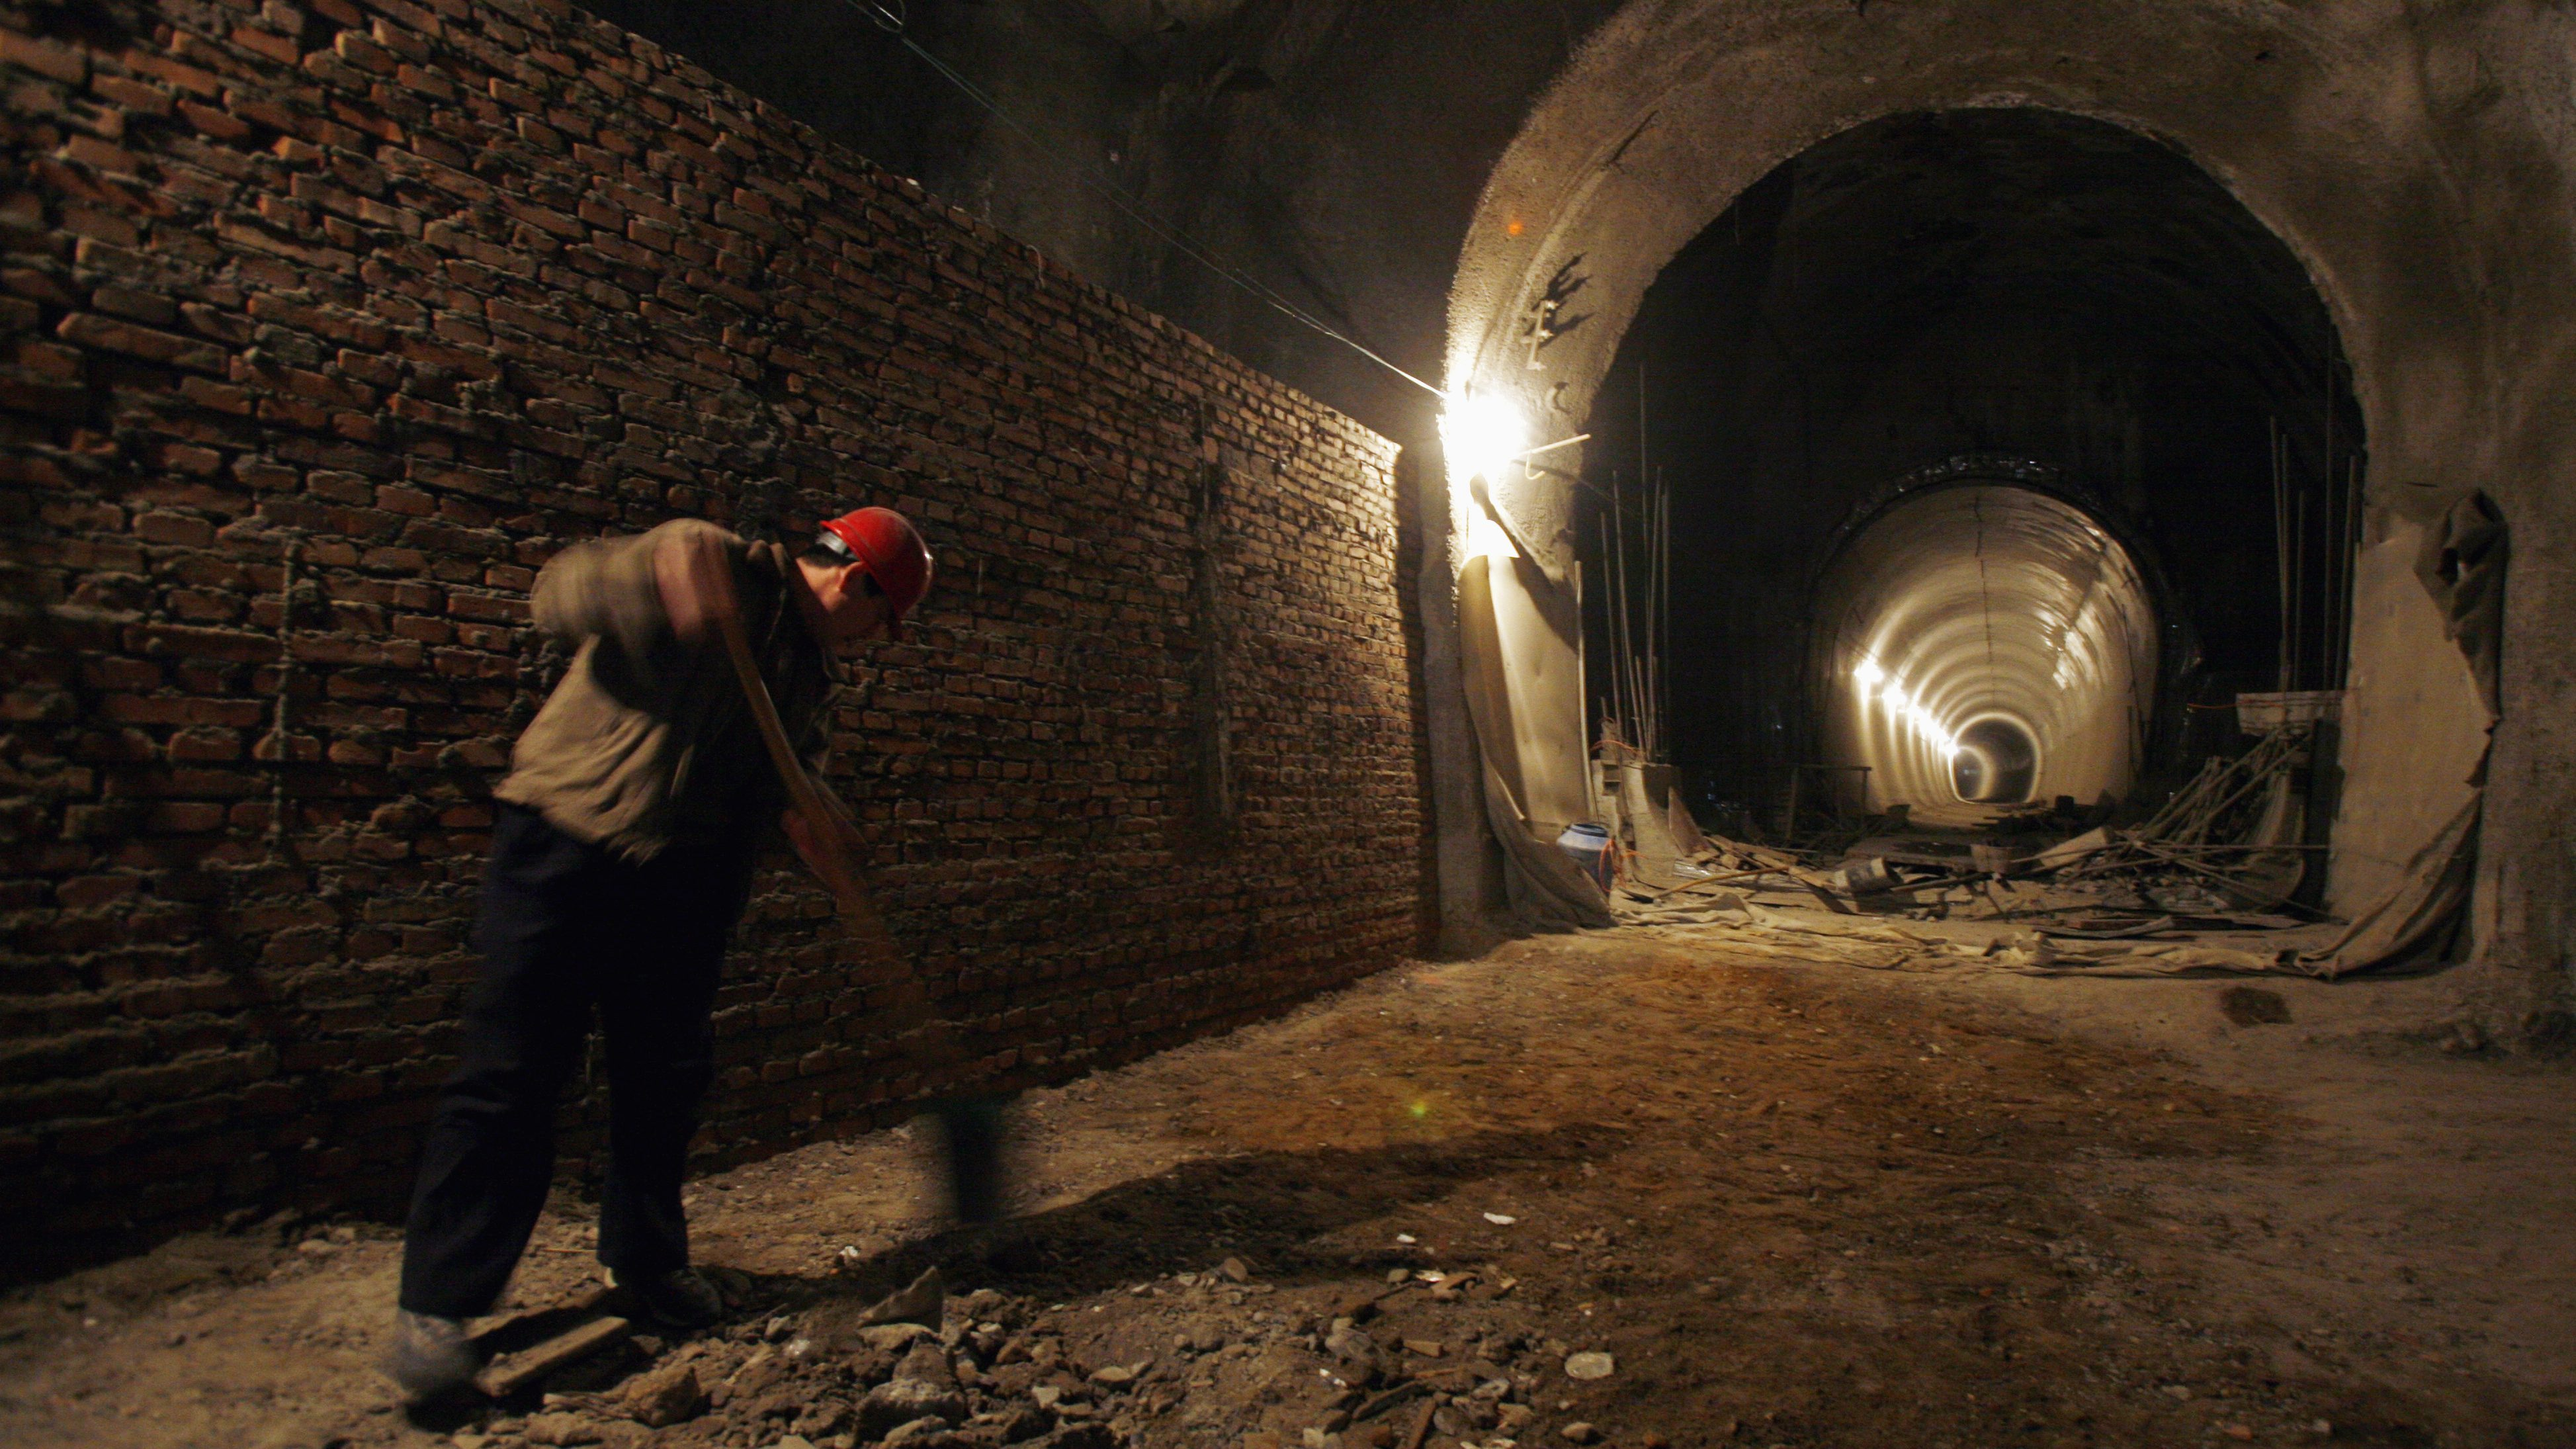 A migrant worker uses a shovel to remove dirt from the floor of one of the railway tunnels under construction in central Beijing January 10, 2008.